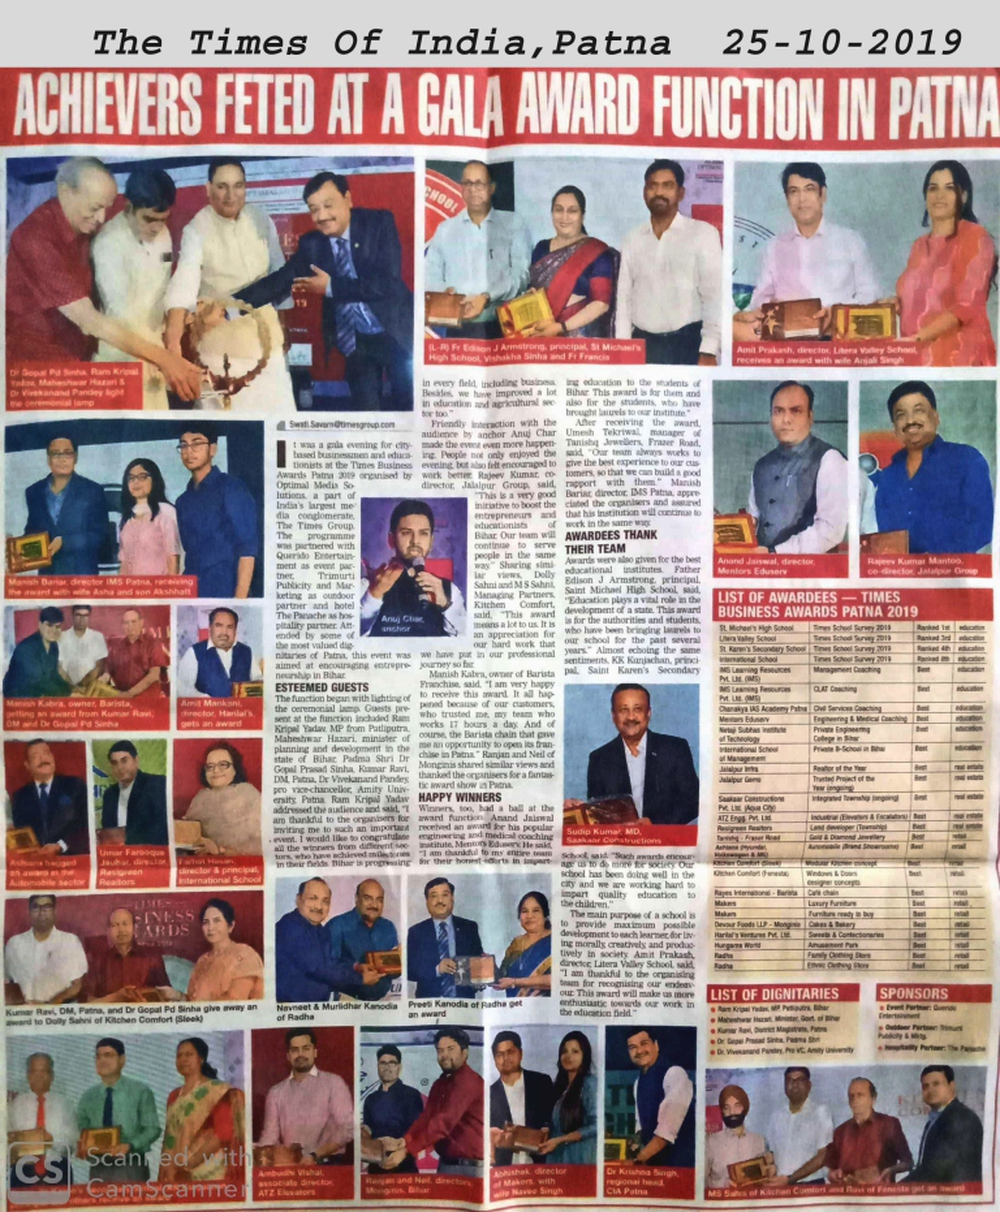 Achievers Feted at a Gala Award Function in Patna